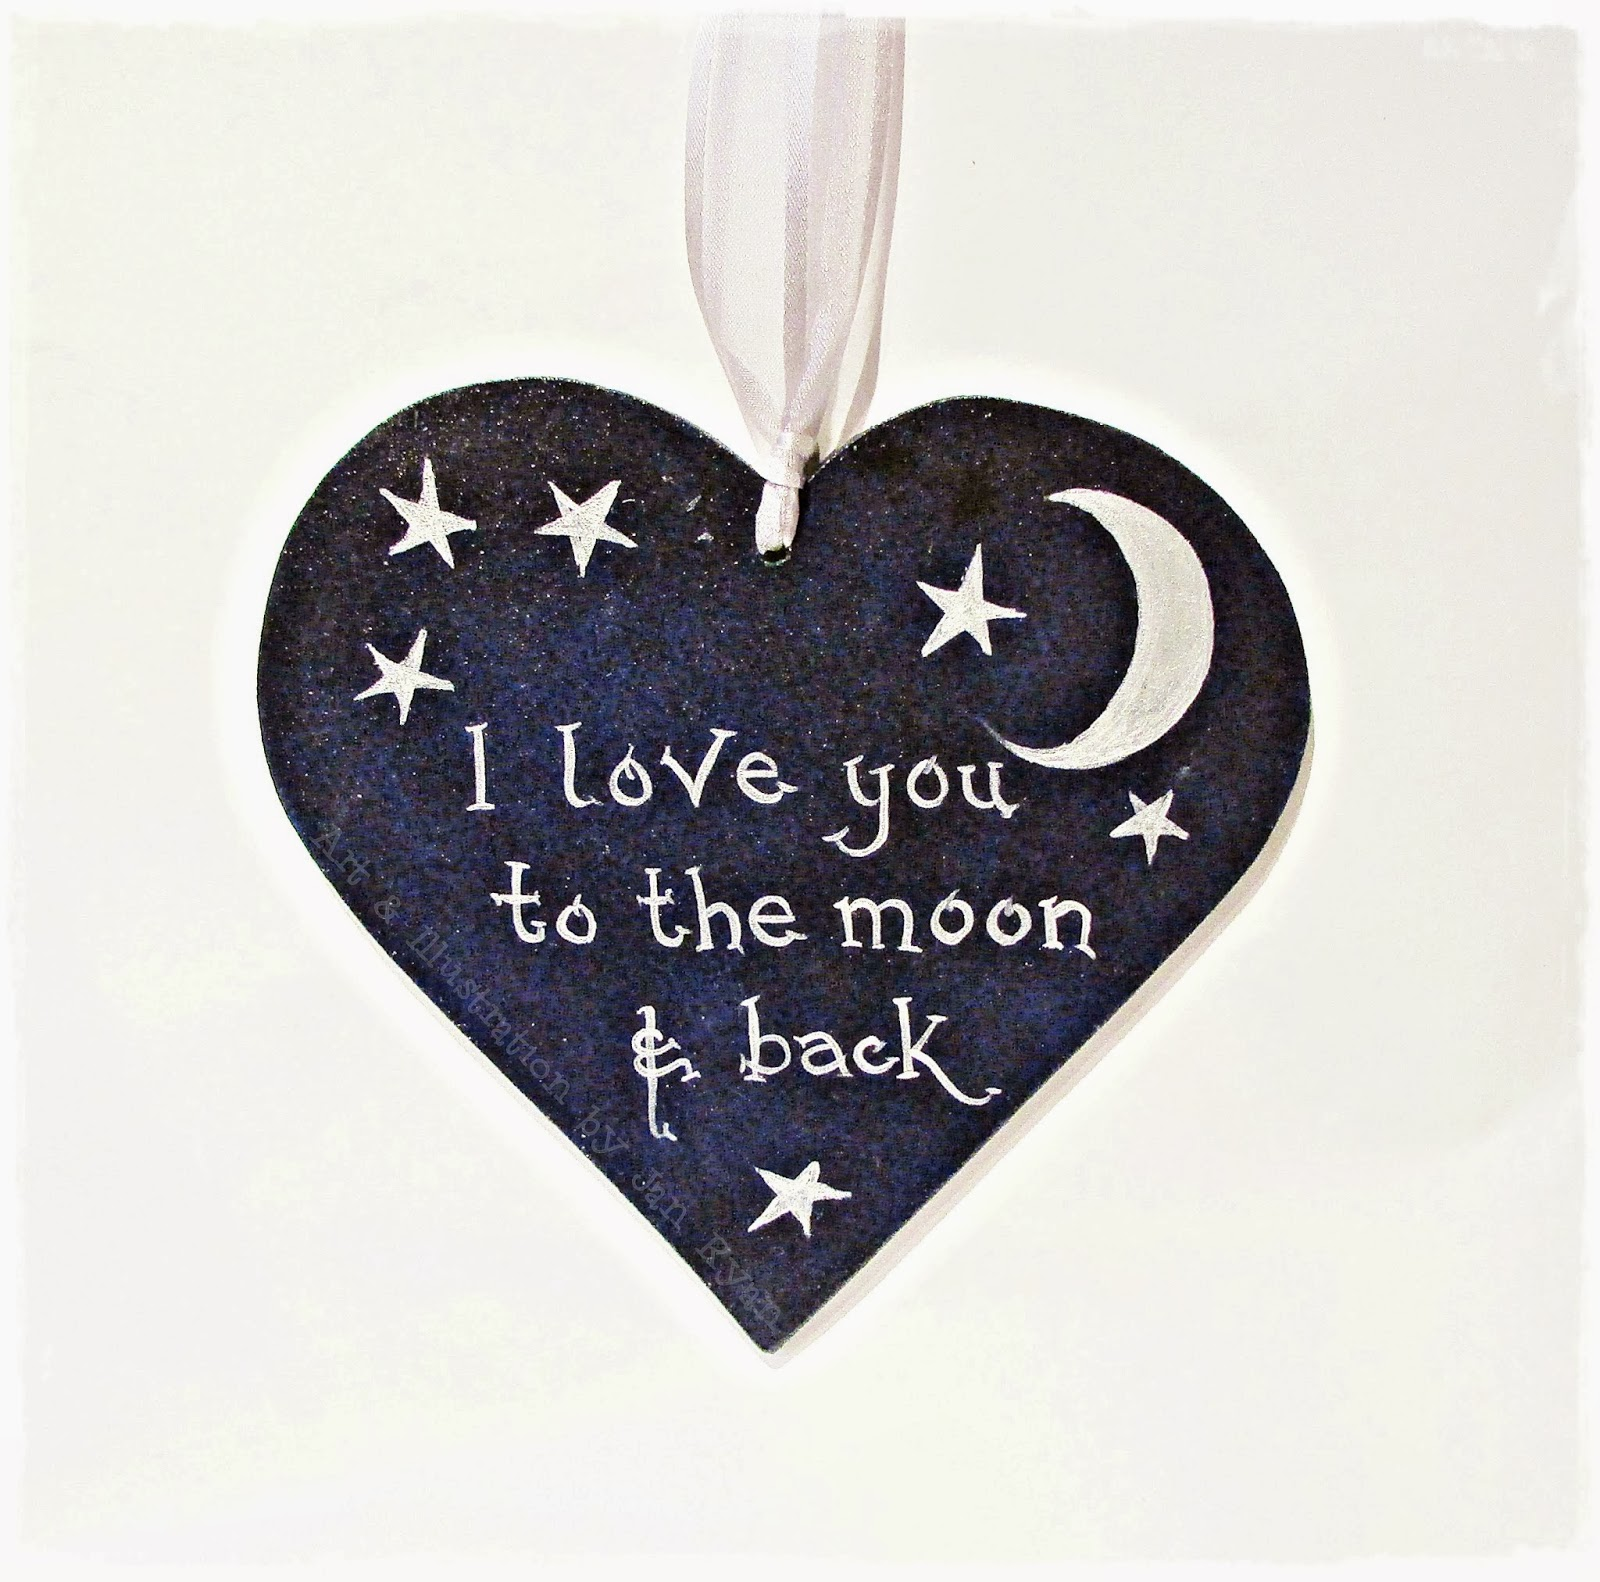 Handcrafted by Picto: I Love You to the Moon & Back ...